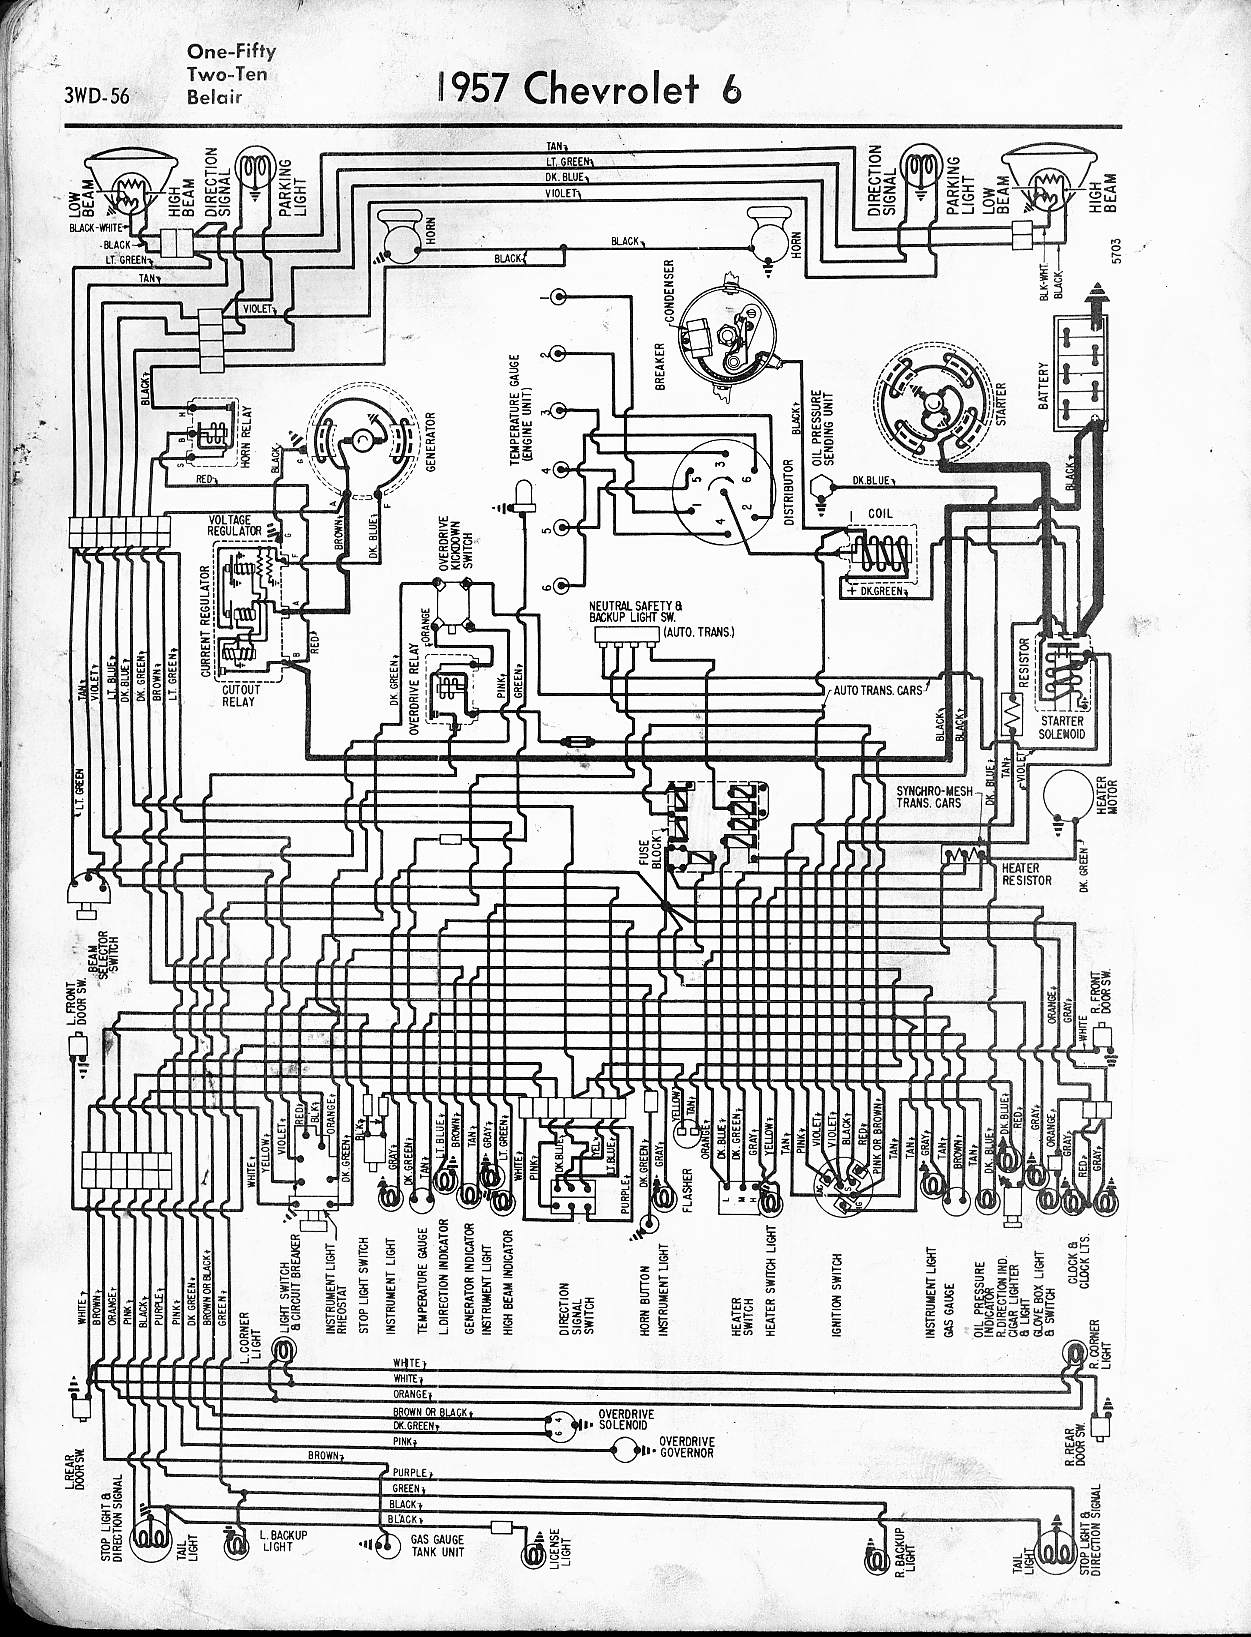 Wiring Diagram 1963 Bel Air Wagon | Wiring Diagram on 1963 falcon speedometer, 1963 falcon exhaust, 1963 falcon brakes, 1963 falcon wheels, 1963 falcon transmission, 1963 falcon battery, 1963 falcon frame, 1963 falcon steering, 1963 falcon ignition coil, 1963 falcon seats, 1963 falcon cylinder head, 1963 falcon suspension, 1963 falcon radio, 1963 falcon distributor, 1963 falcon fuel pump, 1963 falcon brochure, 1963 falcon ford, 1963 falcon specifications, 1963 falcon engine, 1963 falcon radiator,